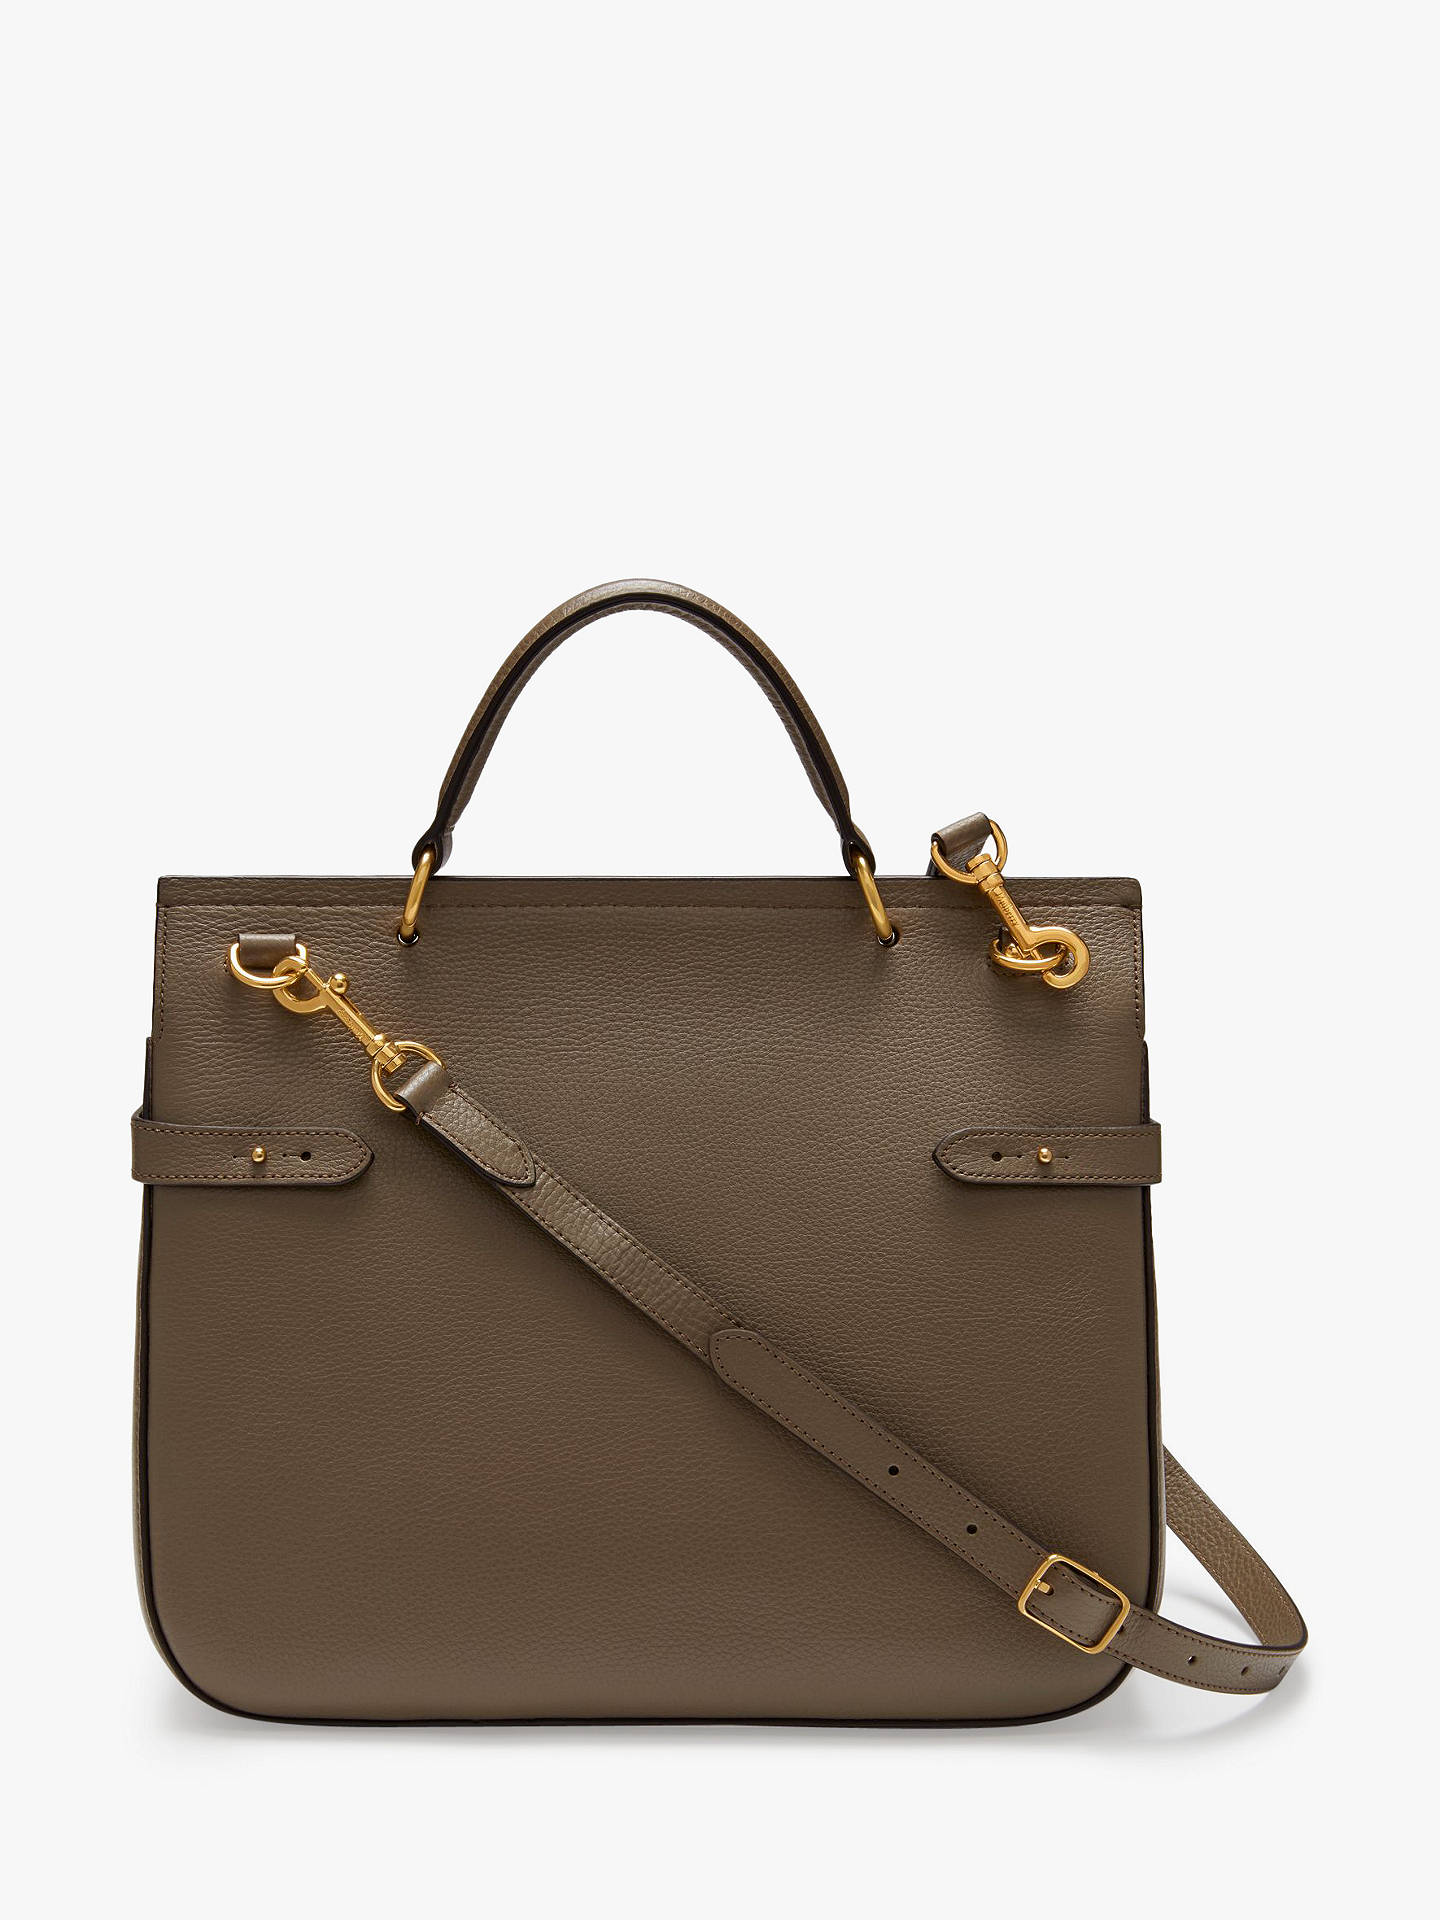 a659c1c66b0 ... BuyMulberry Amberley Small Classic Grain Leather Satchel Bag, Clay  Online at johnlewis.com ...